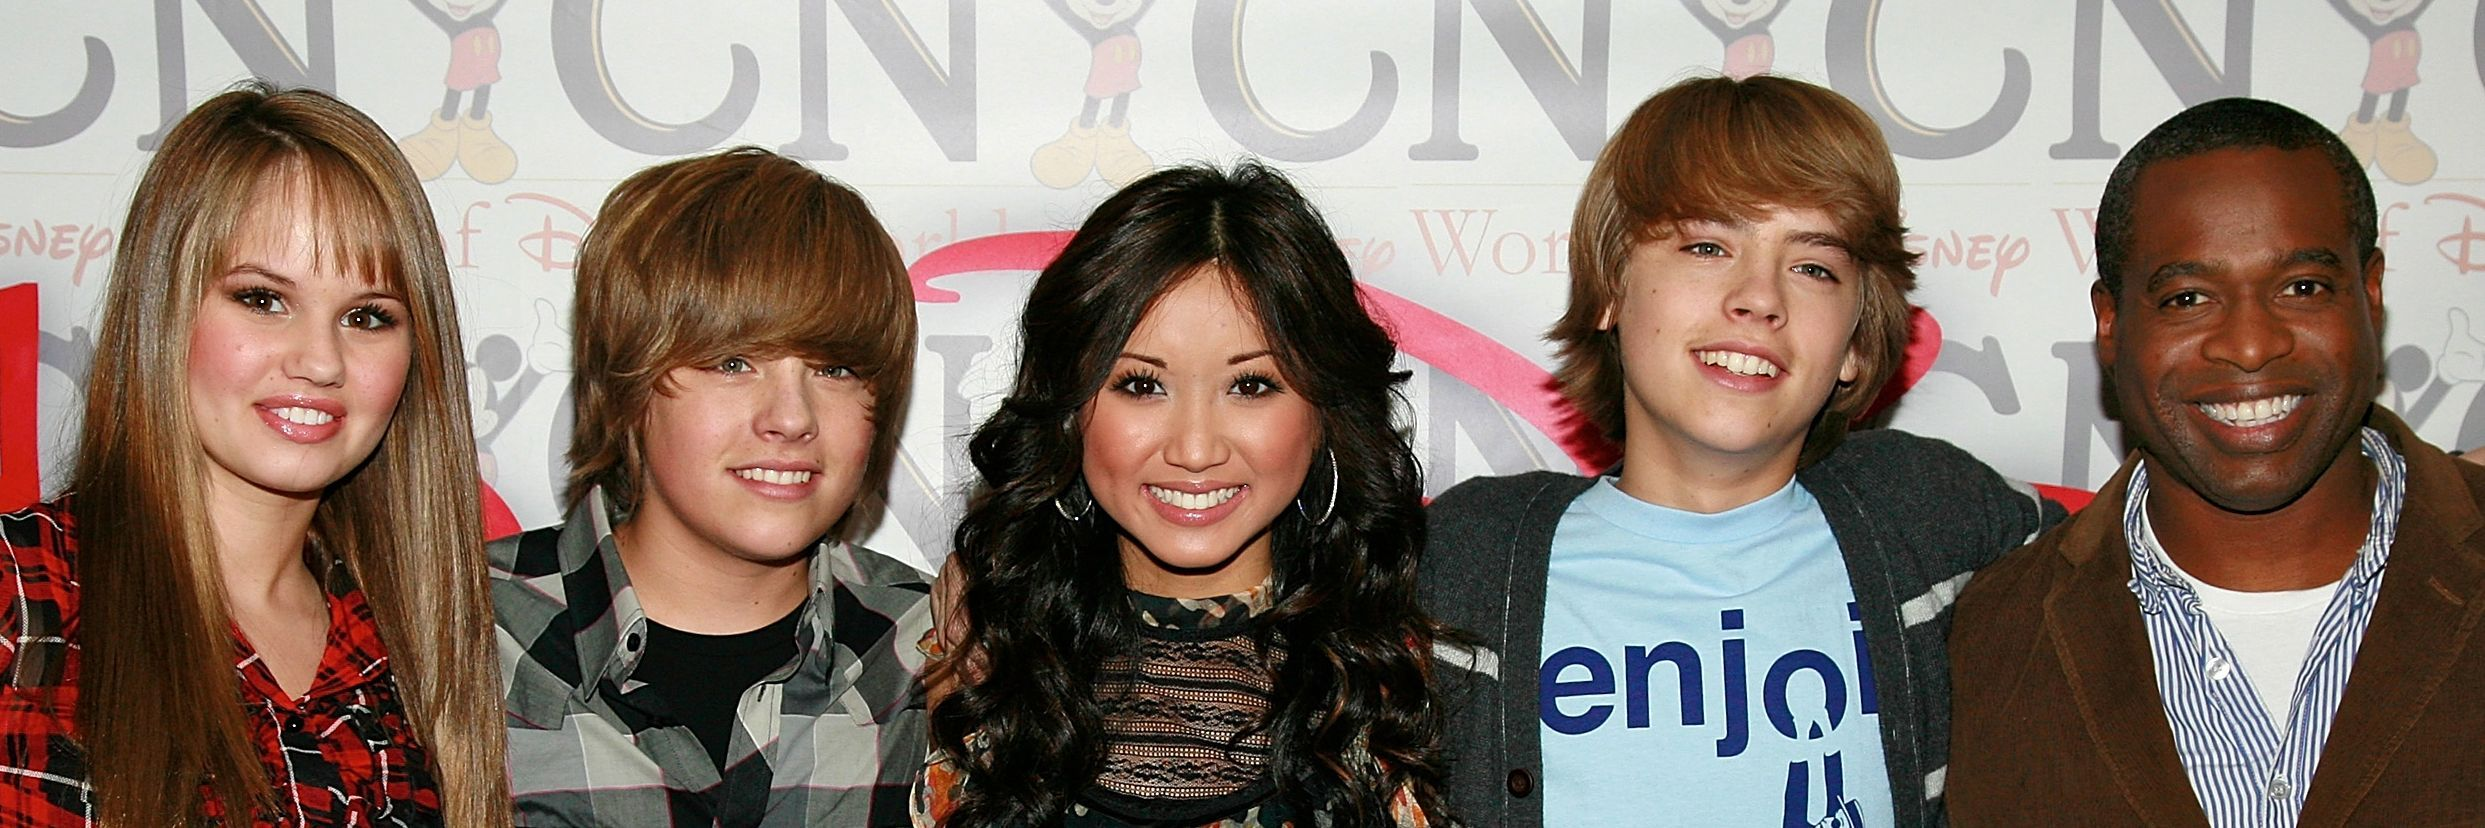 There Was A Suite Life On Deck Reunion Over The Weekend , MTV